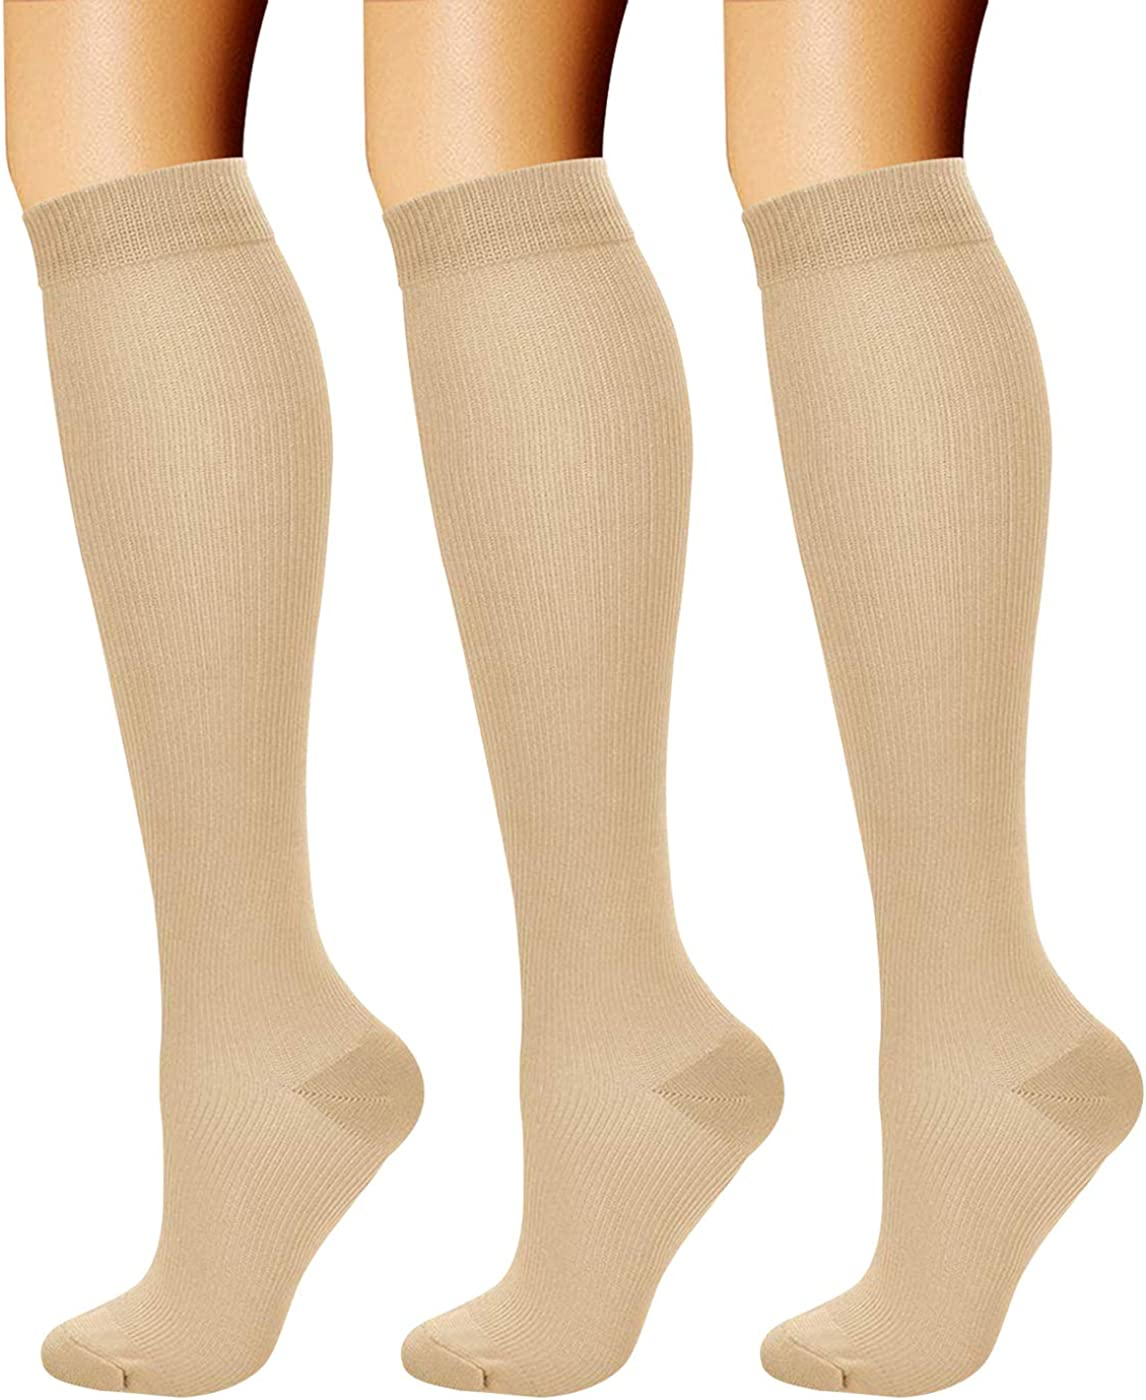 CHARMKING Compression Socks for Women & Men (3 Pairs) 15-20 mmHg is Best for Athletic, Running, Flight Travel, Cycling